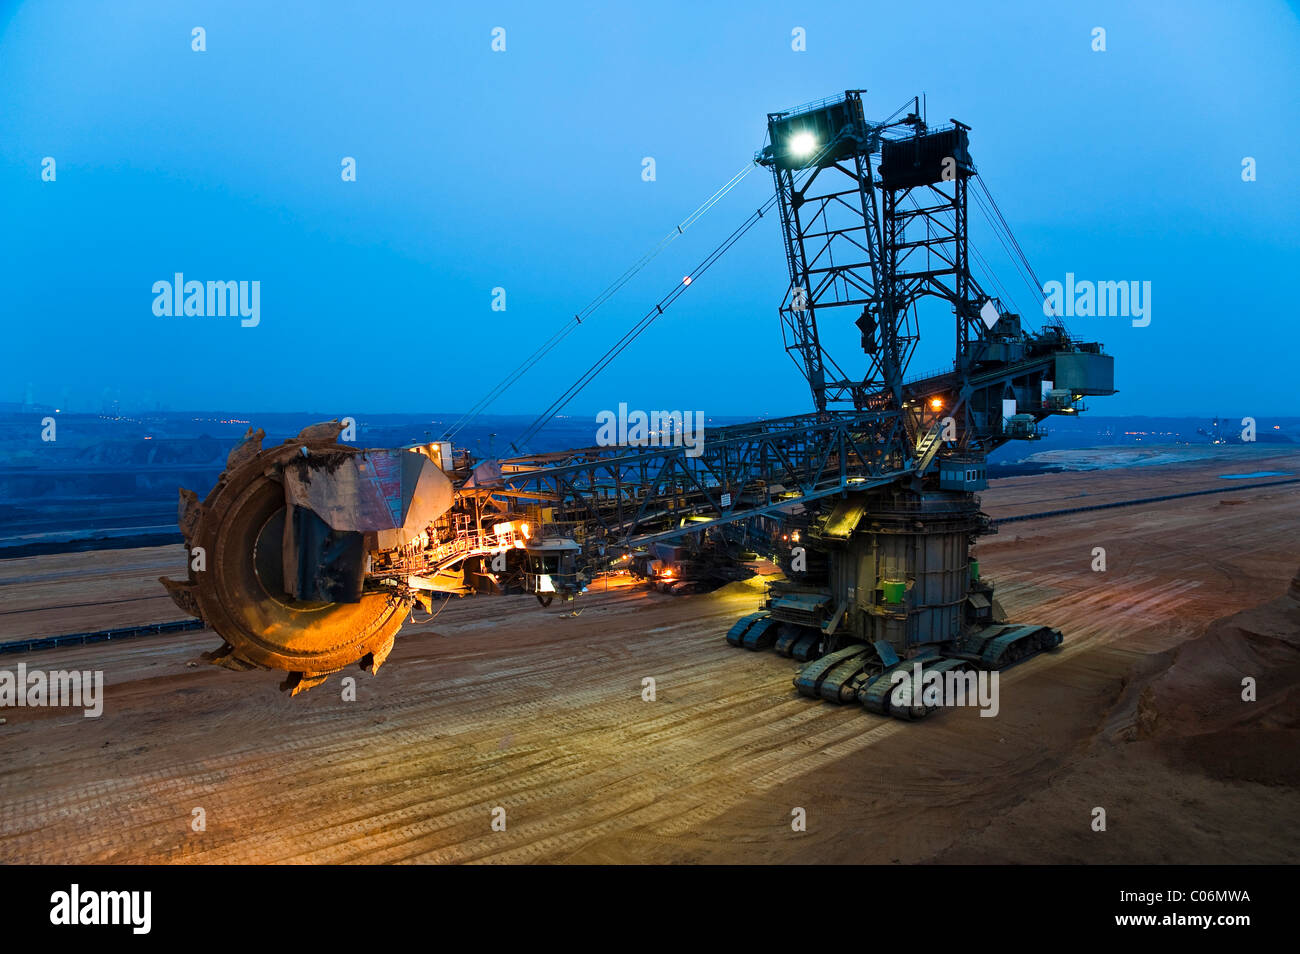 Bucket-wheel excavator changing its location in an open pit, Grevenbroich, North Rhine-Westphalia, Germany, Europe - Stock Image